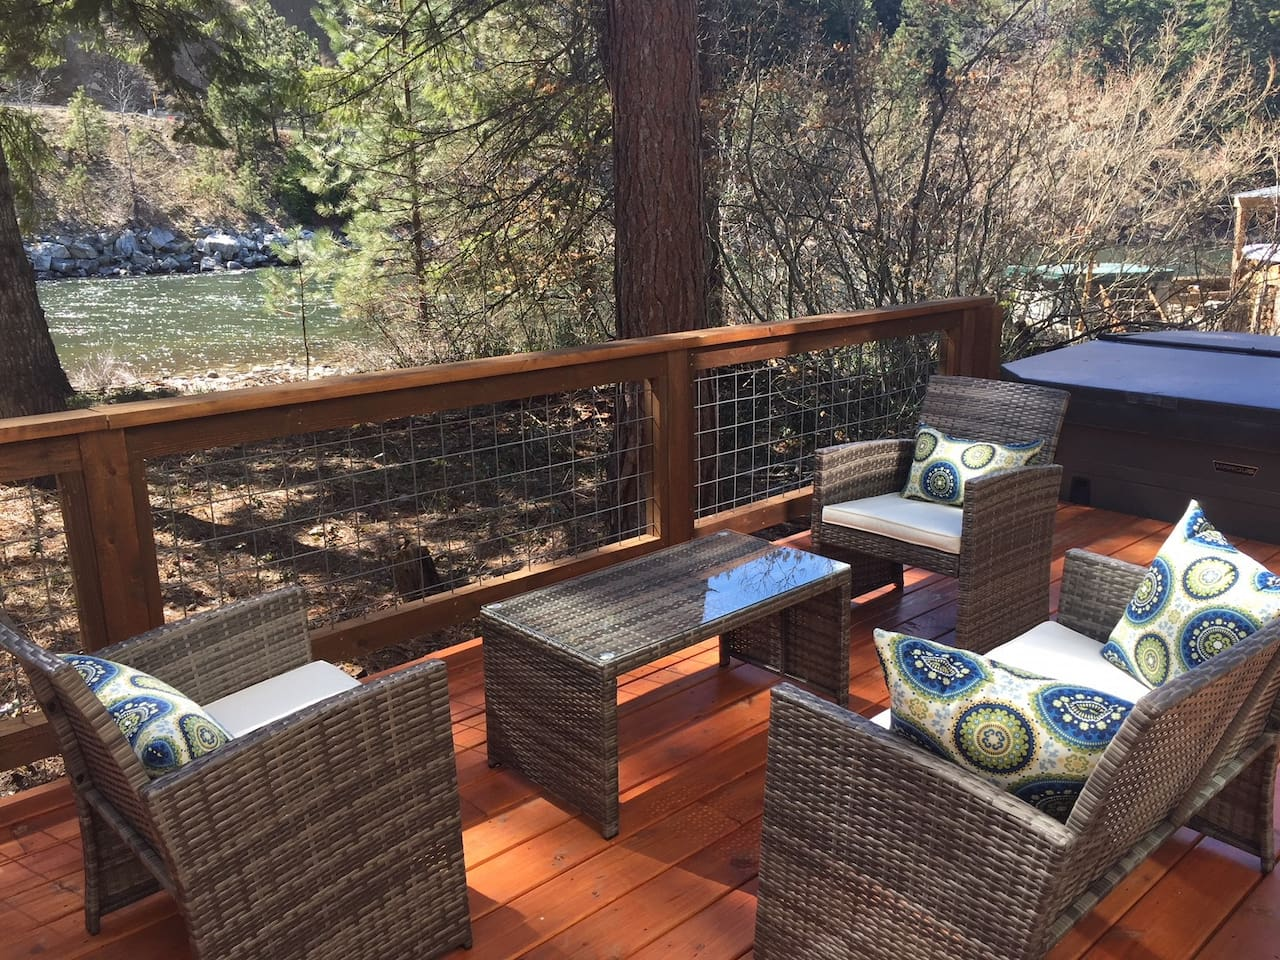 Relax on the deck or soak in the hot tub while the river floats by